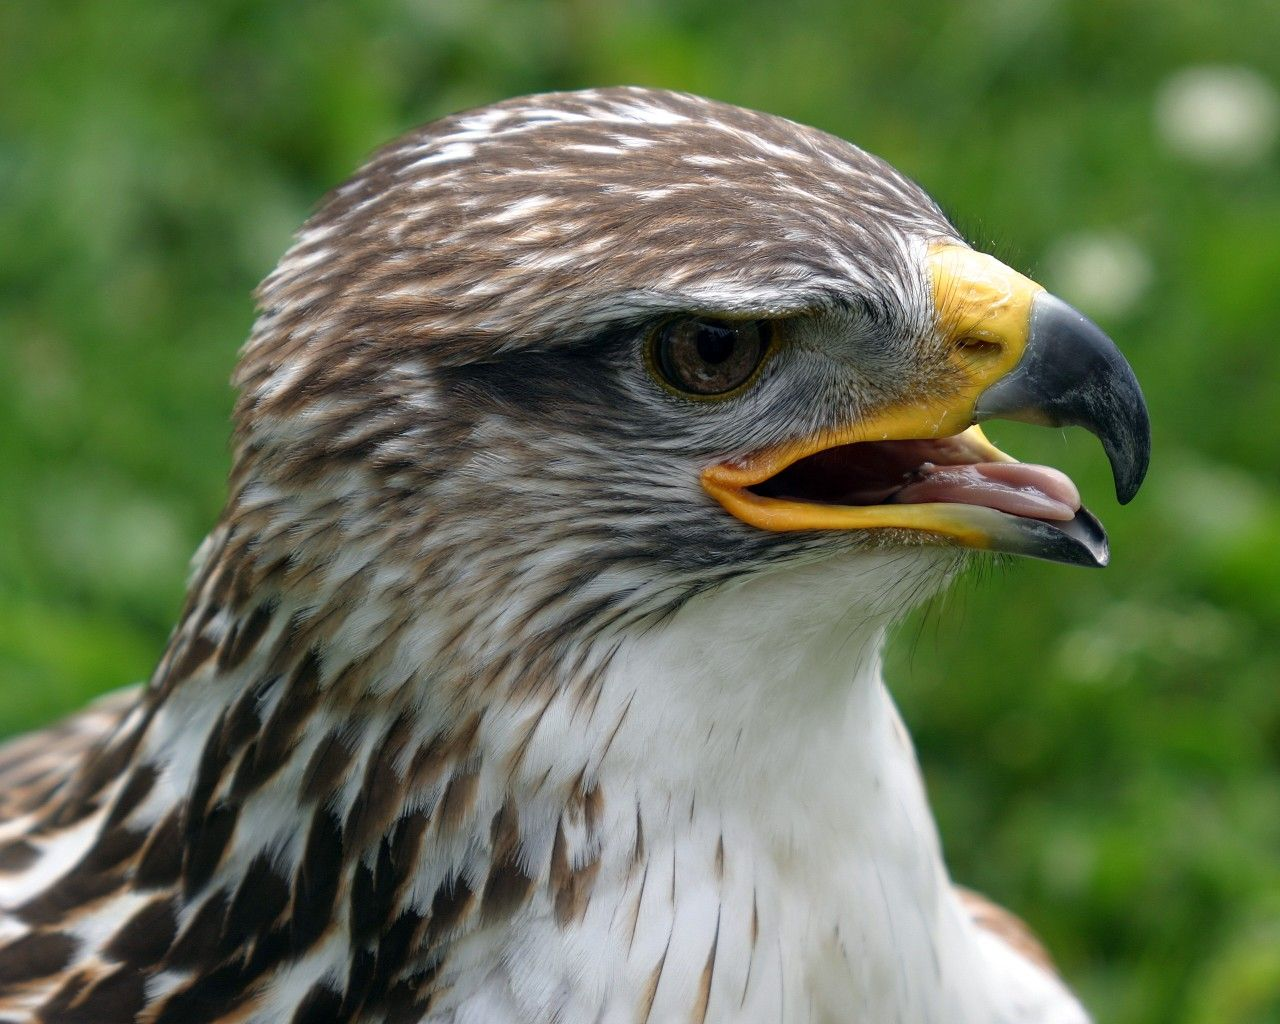 Hawk Face Close Up Wallpaper 1280x1024